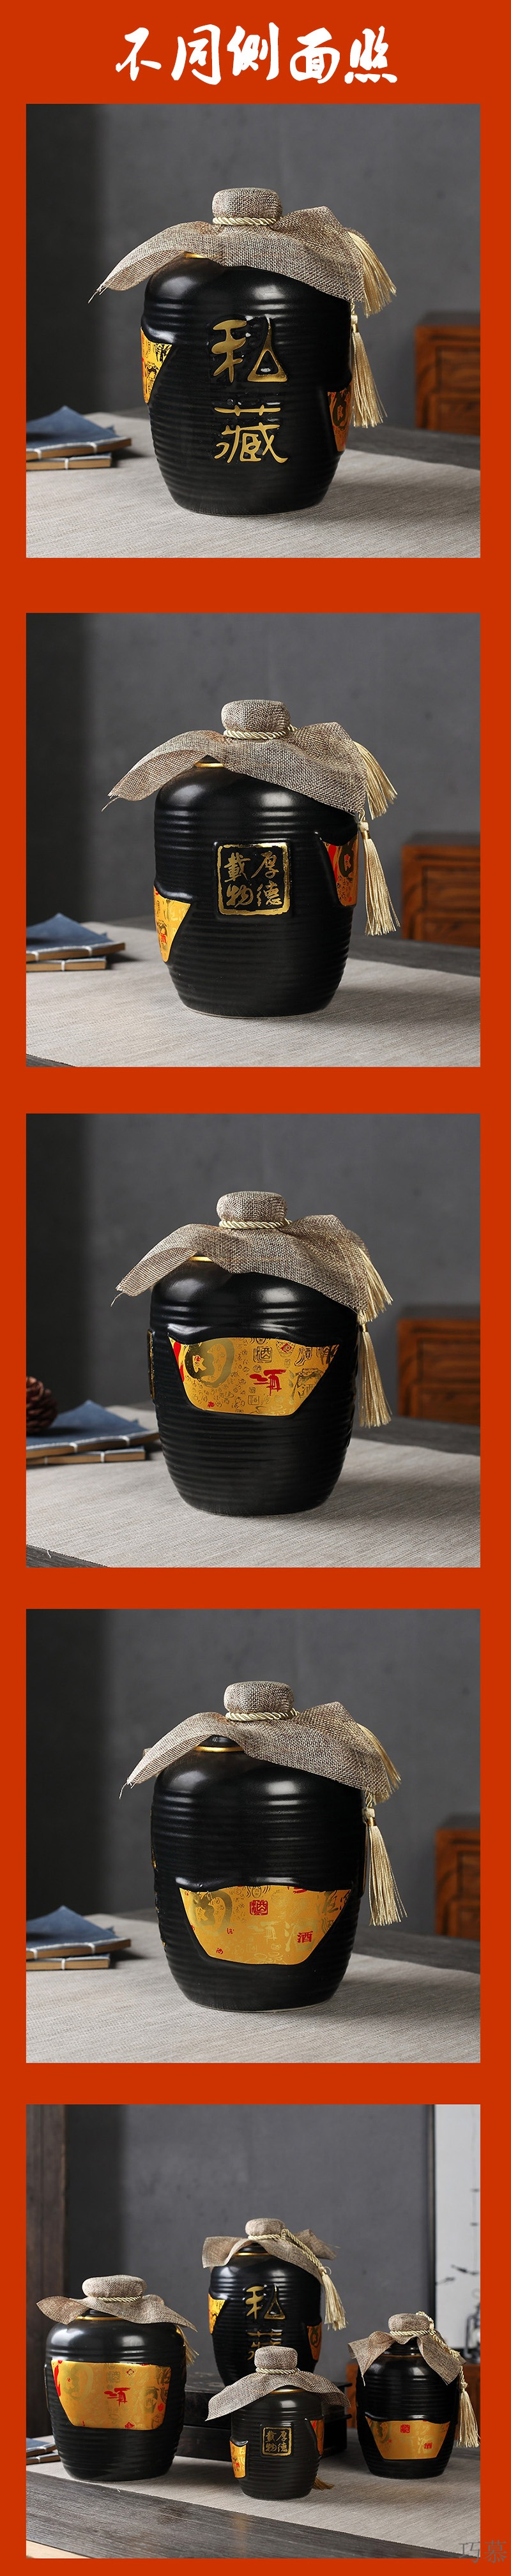 Qiao mu 1 catty 2 jins of restoring ancient ways is 3 kg 5 jins of 10 jins of jingdezhen ceramic jar small expressions using sealed the empty bottle of liquor